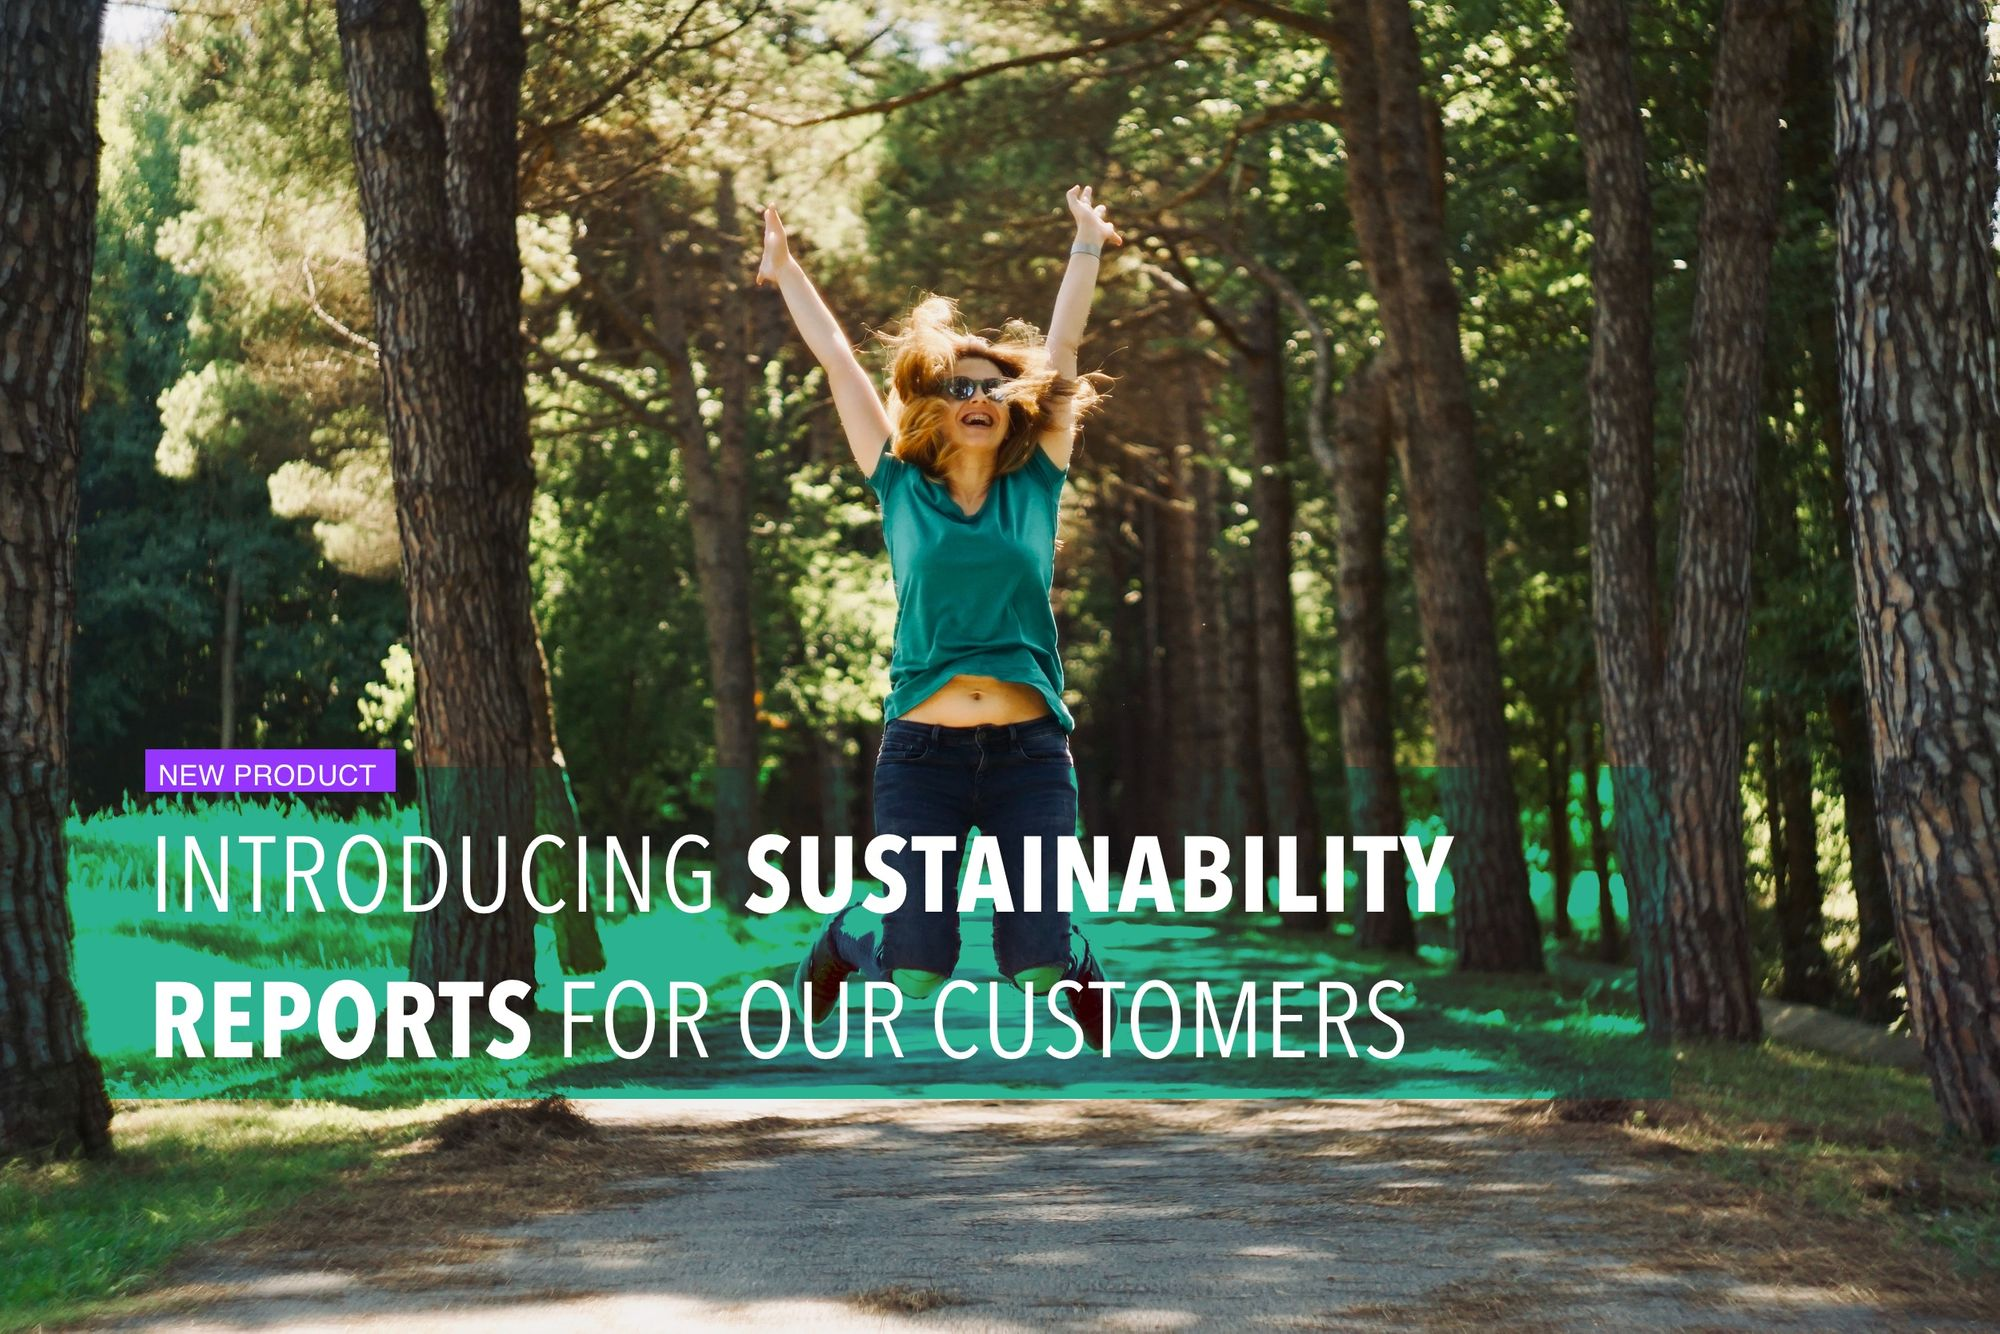 Introducing sustainability reports for our customers